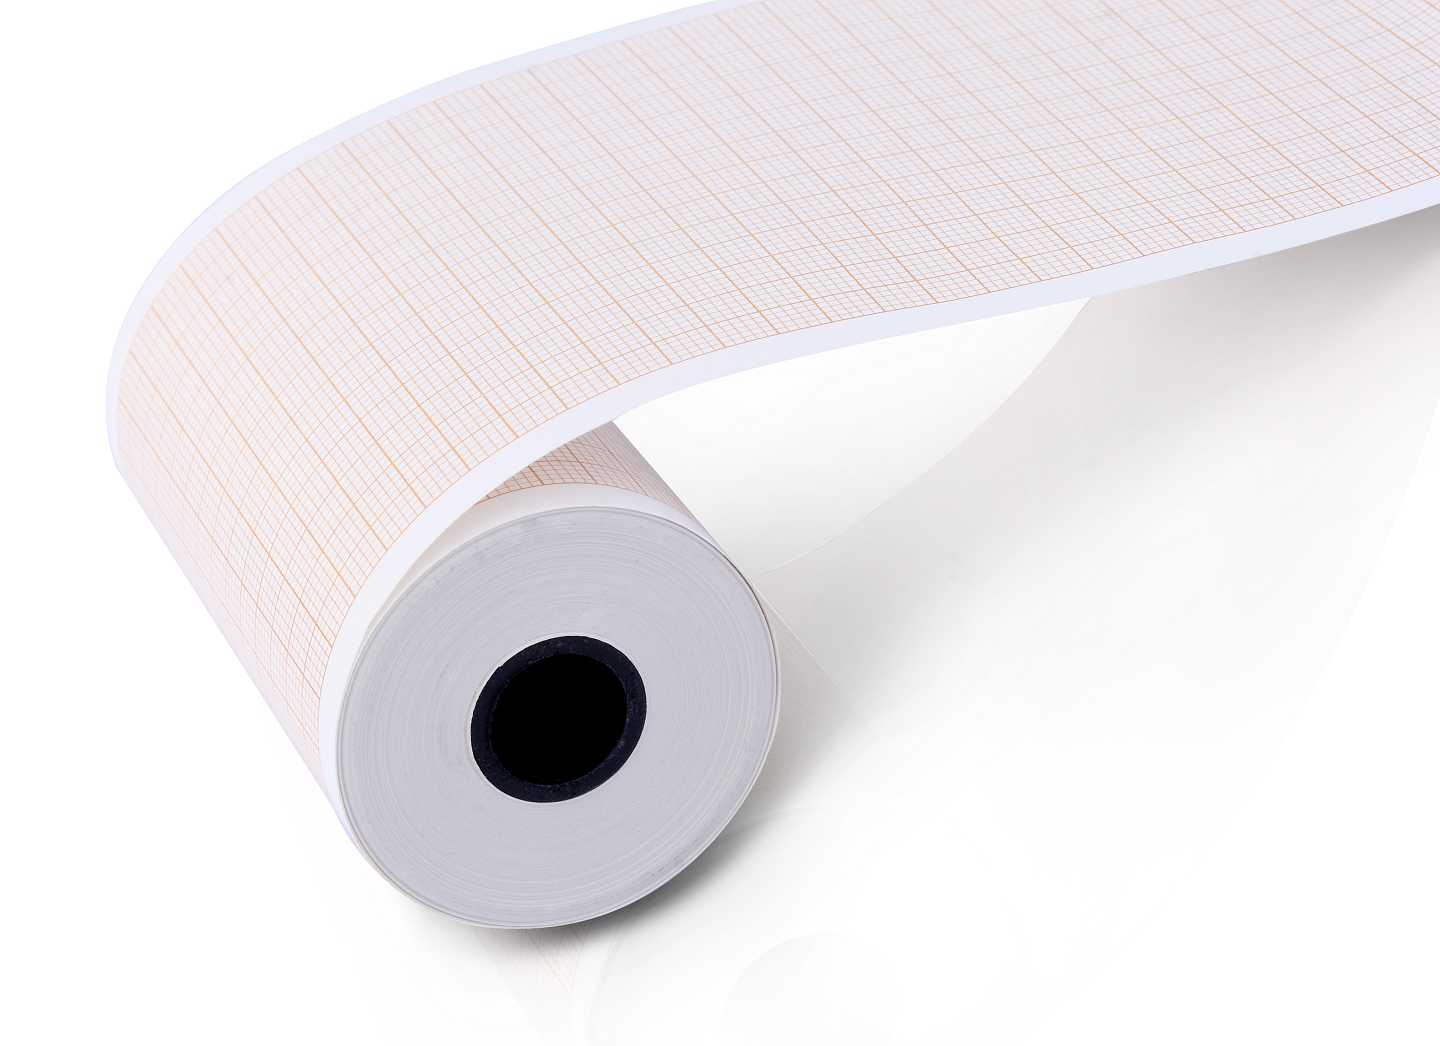 medical recording paper Alibabacom offers 1,259 medical recording paper products about 7% of these are cash register paper, 4% are surgical supplies, and 3% are dressings and care for.